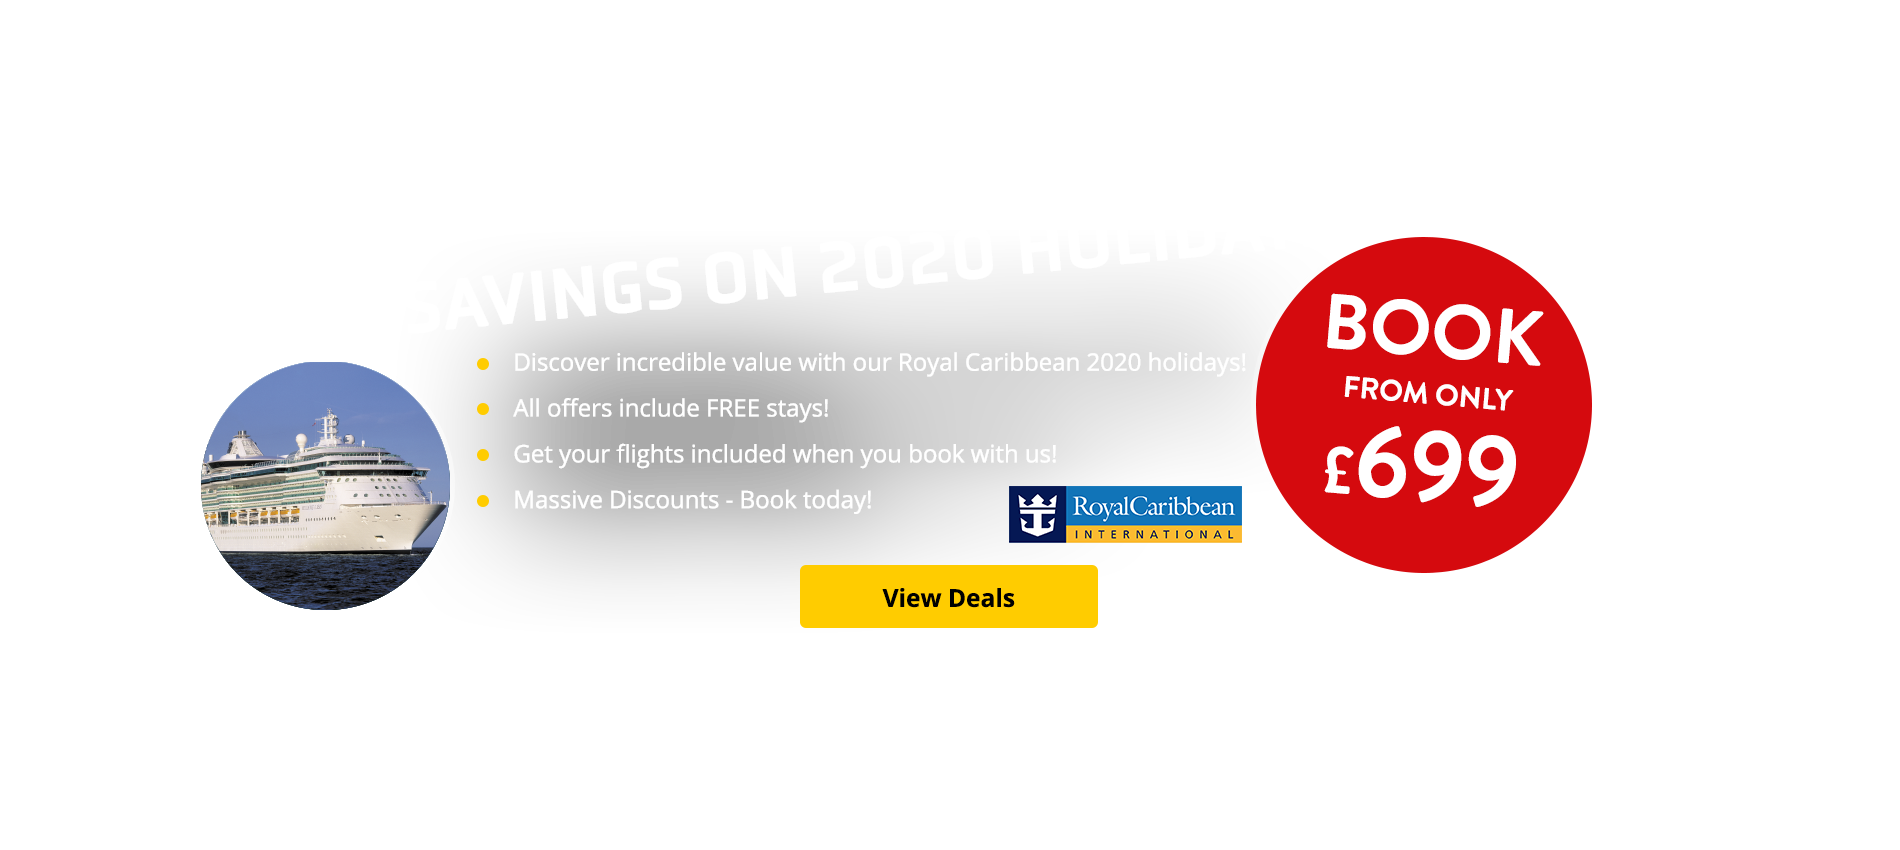 Discover incredible value with our Royal Caribbean 2020 holidays! Get your flights & FREE stays included when you book with us!